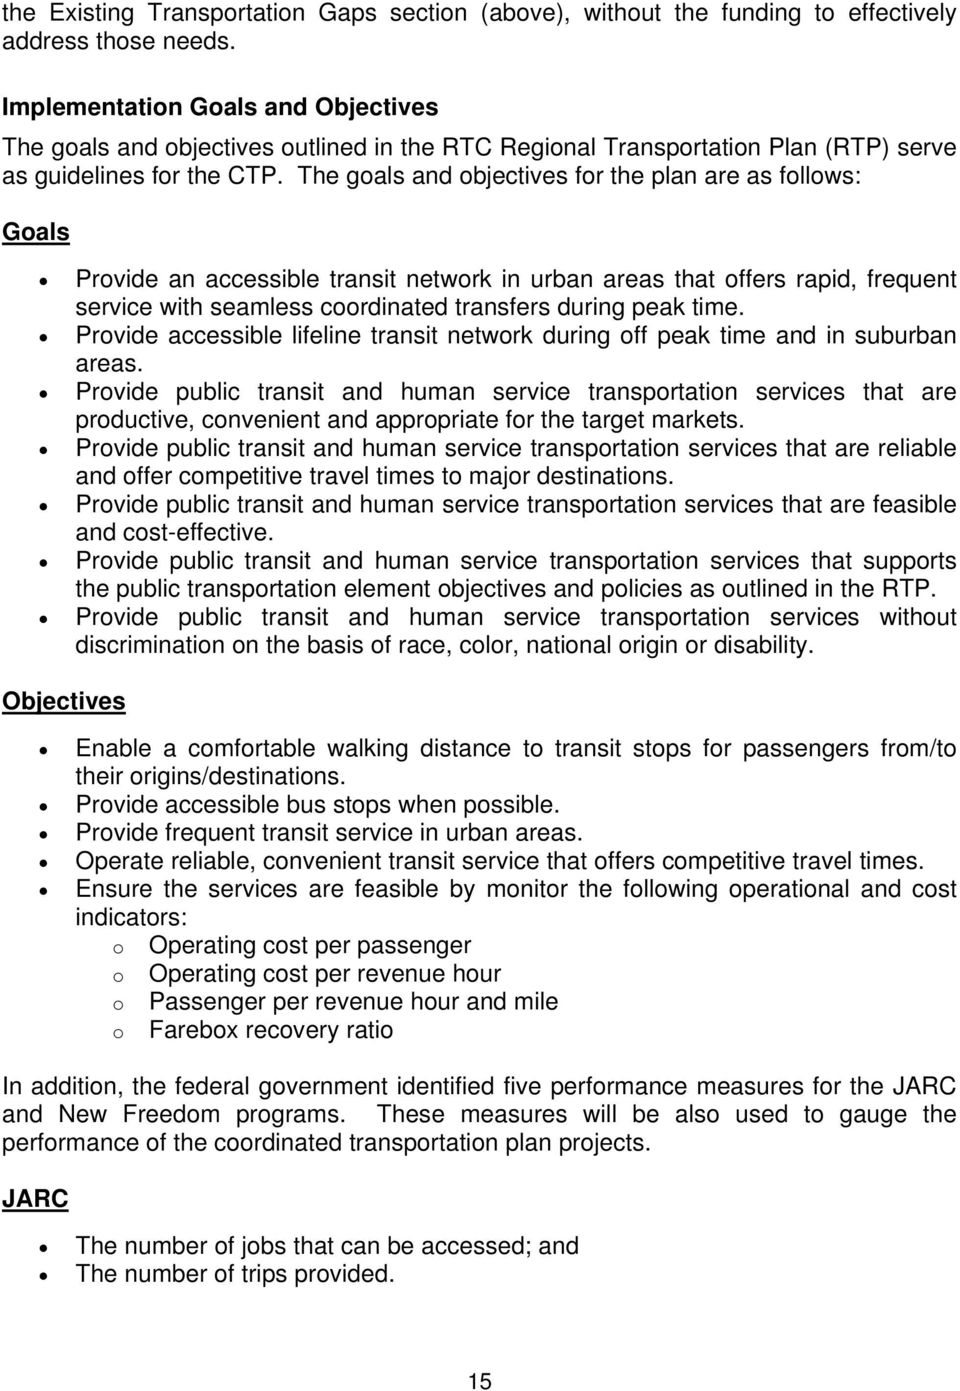 The goals and objectives for the plan are as follows: Goals Provide an accessible transit network in urban areas that offers rapid, frequent service with seamless coordinated transfers during peak